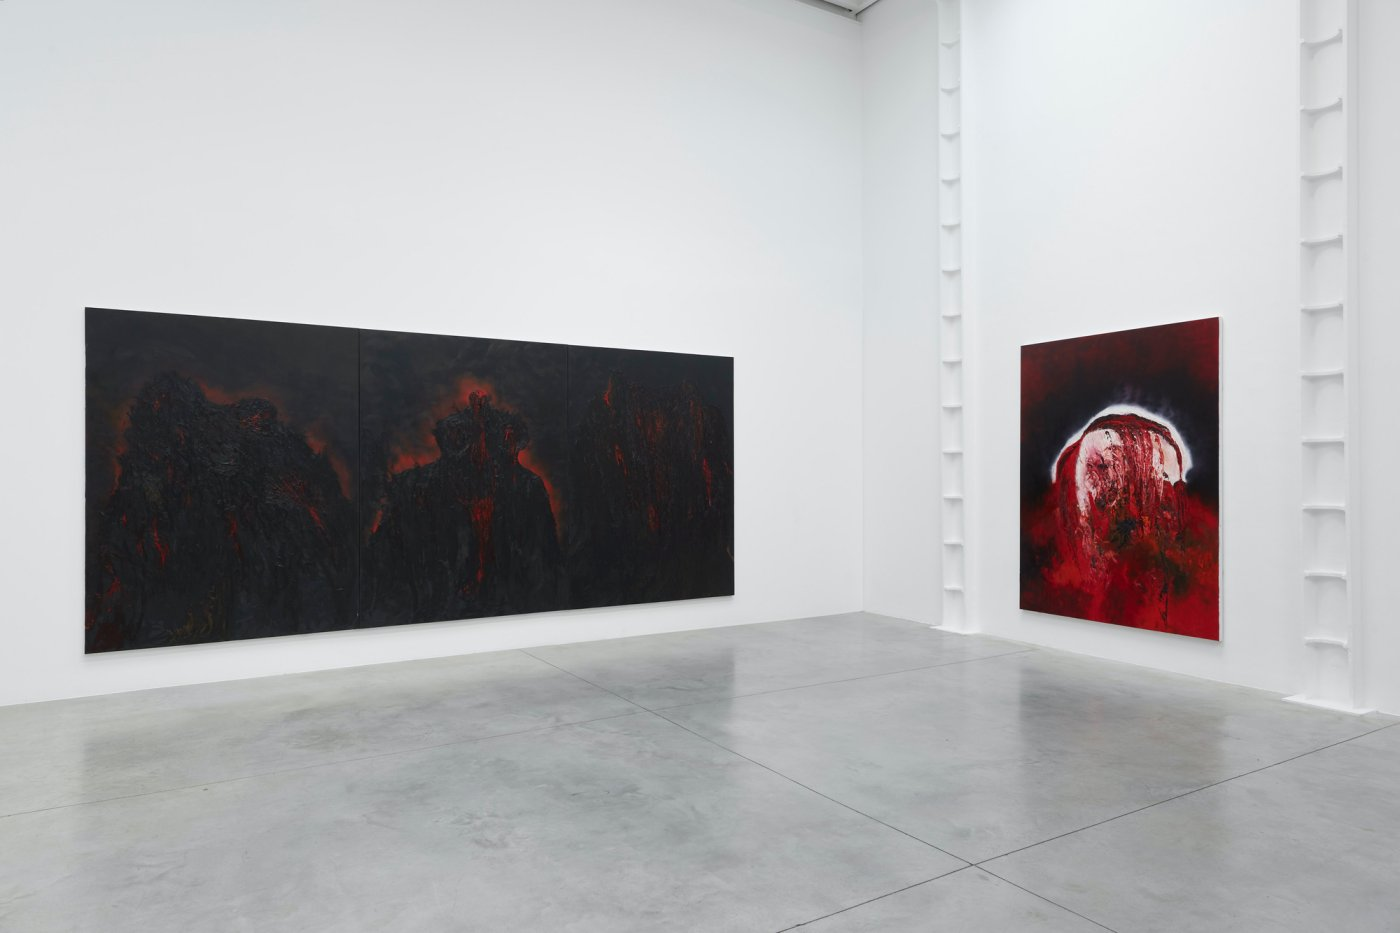 Lisson Gallery 27 Bell St Anish Kapoor 2